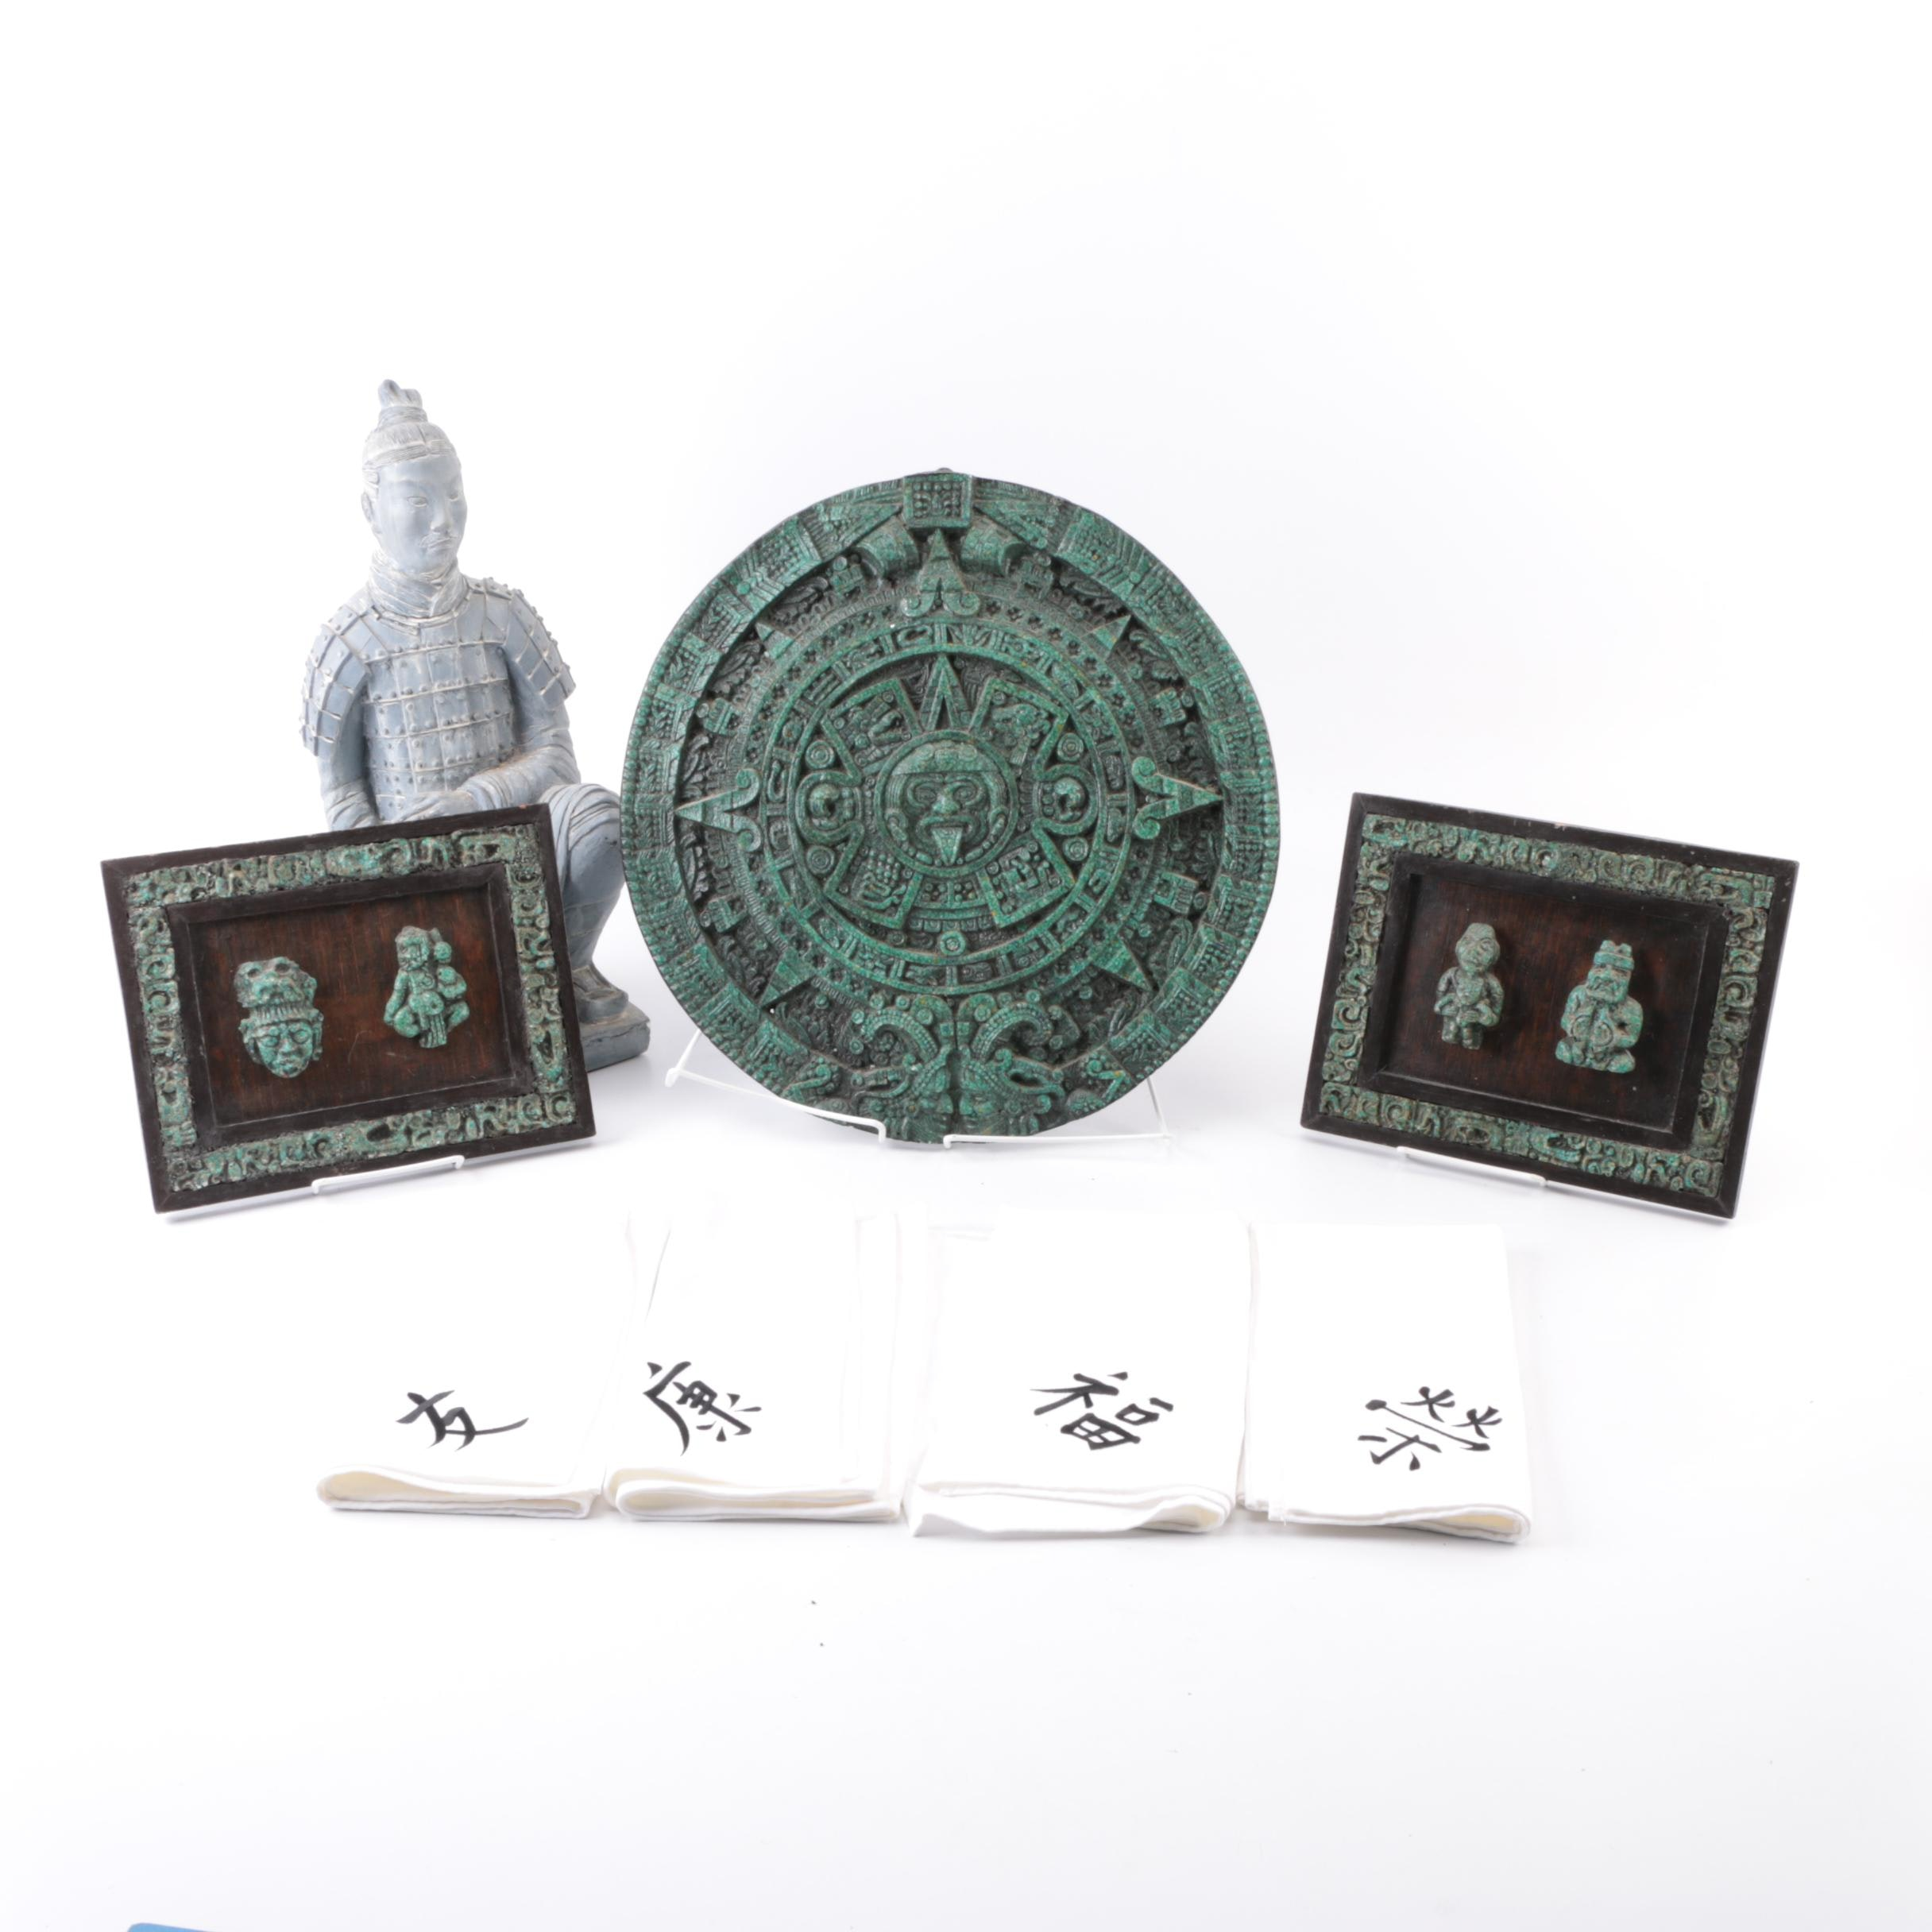 Central American and Chinese Influenced Home Decor with Table Napkins